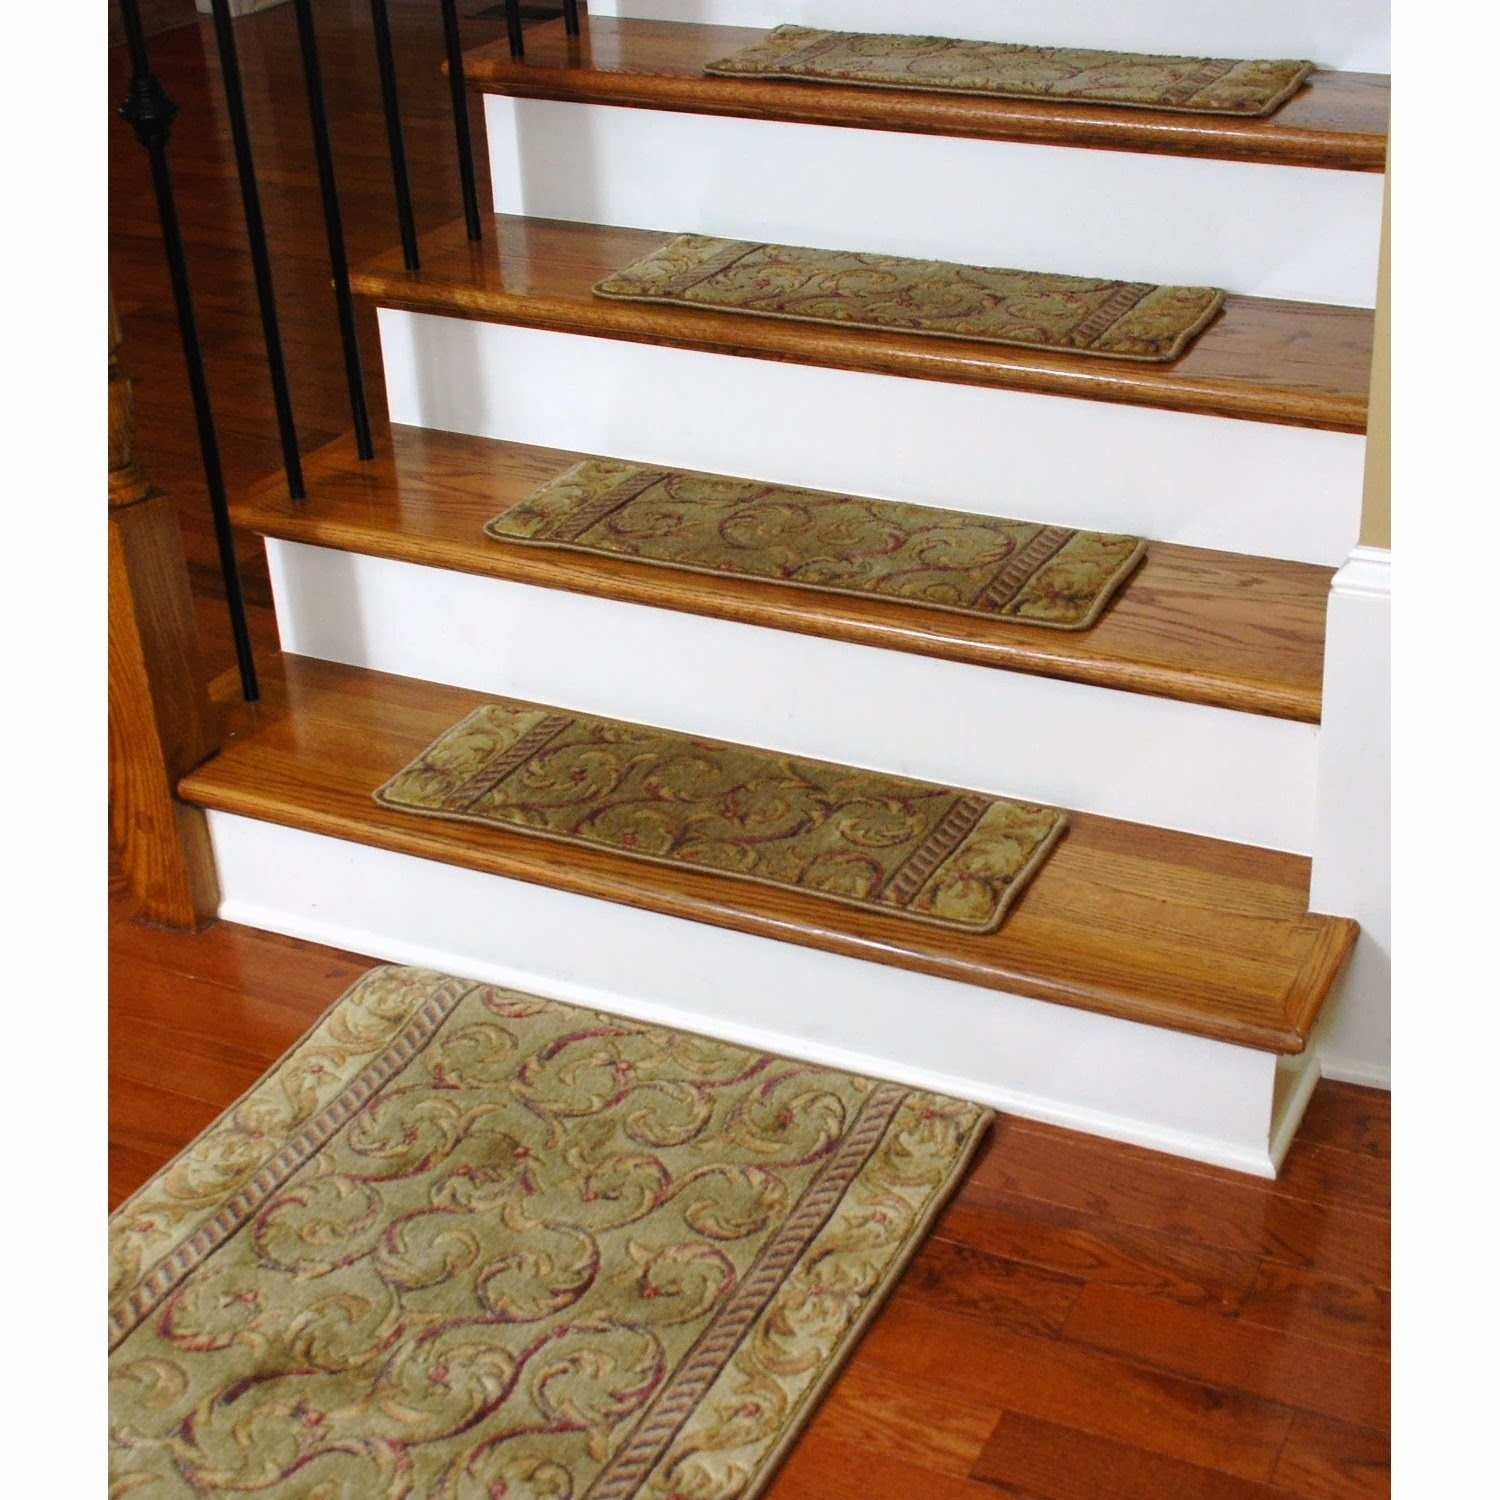 Entry Mudroom Wondrous Carpet Stair Treads With Classic Colors Intended For Stair Tread Carpet Pads (Image 8 of 15)